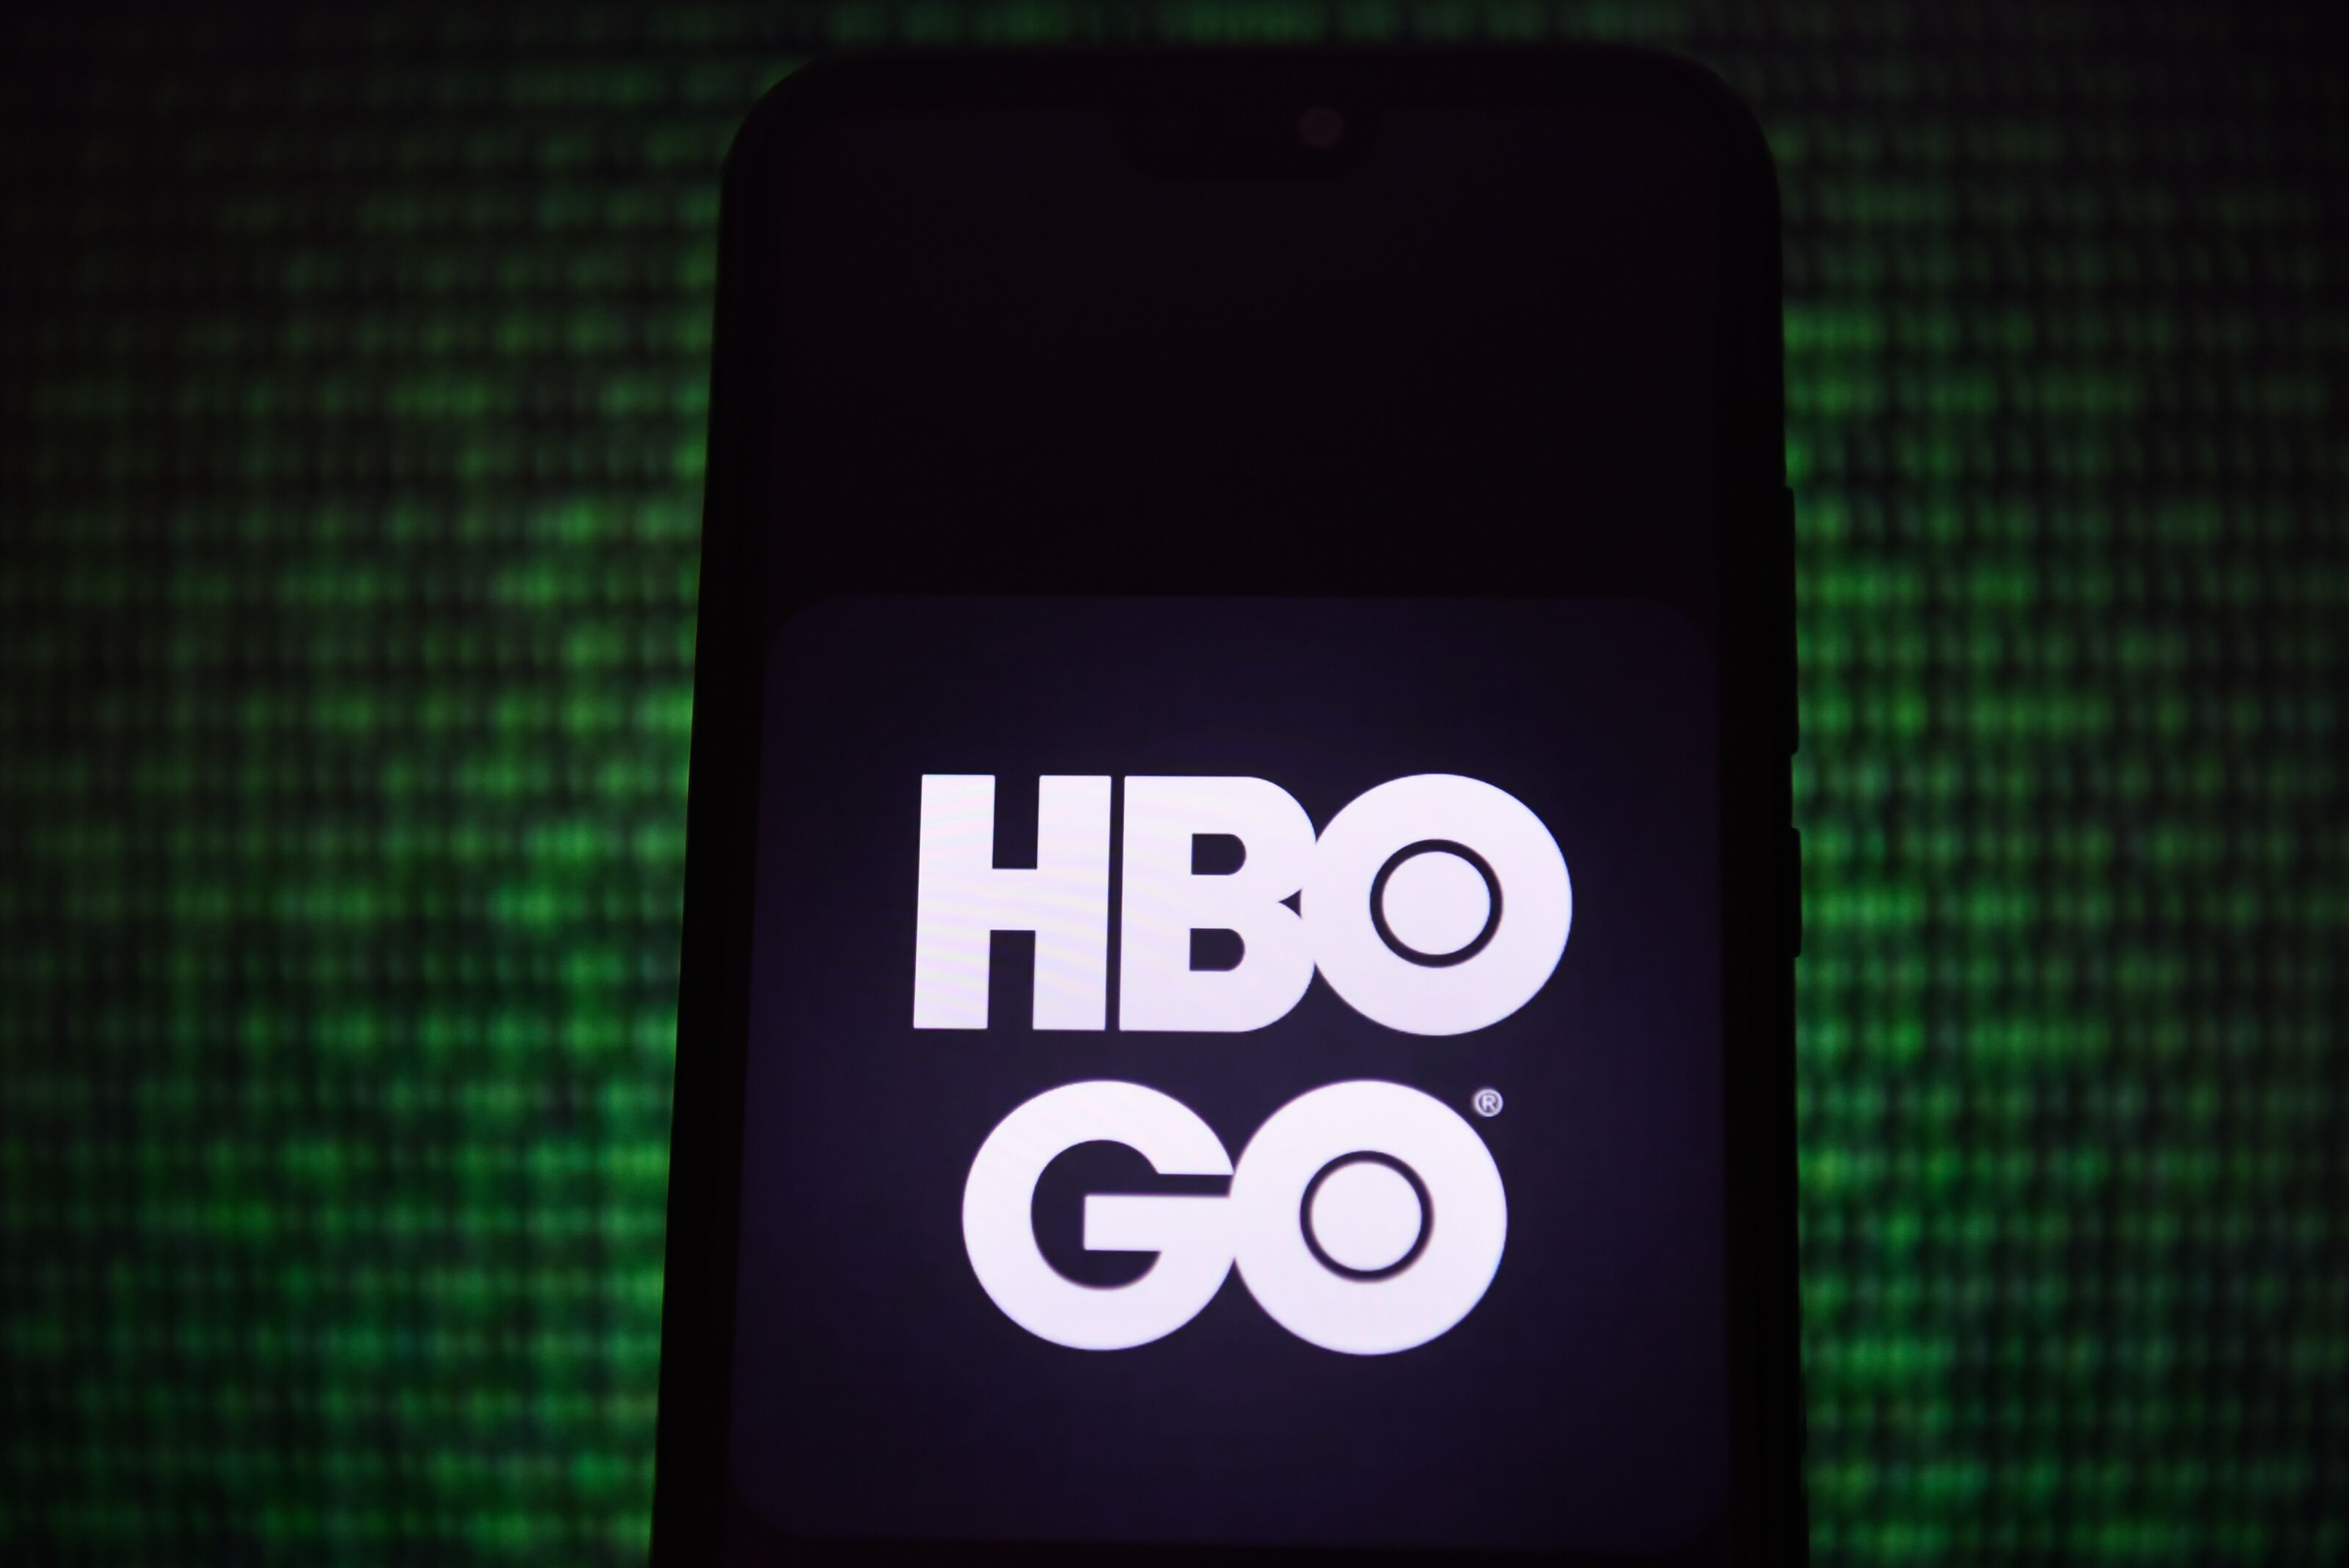 How to watch Game of Thrones on HBO Go and HBO Now